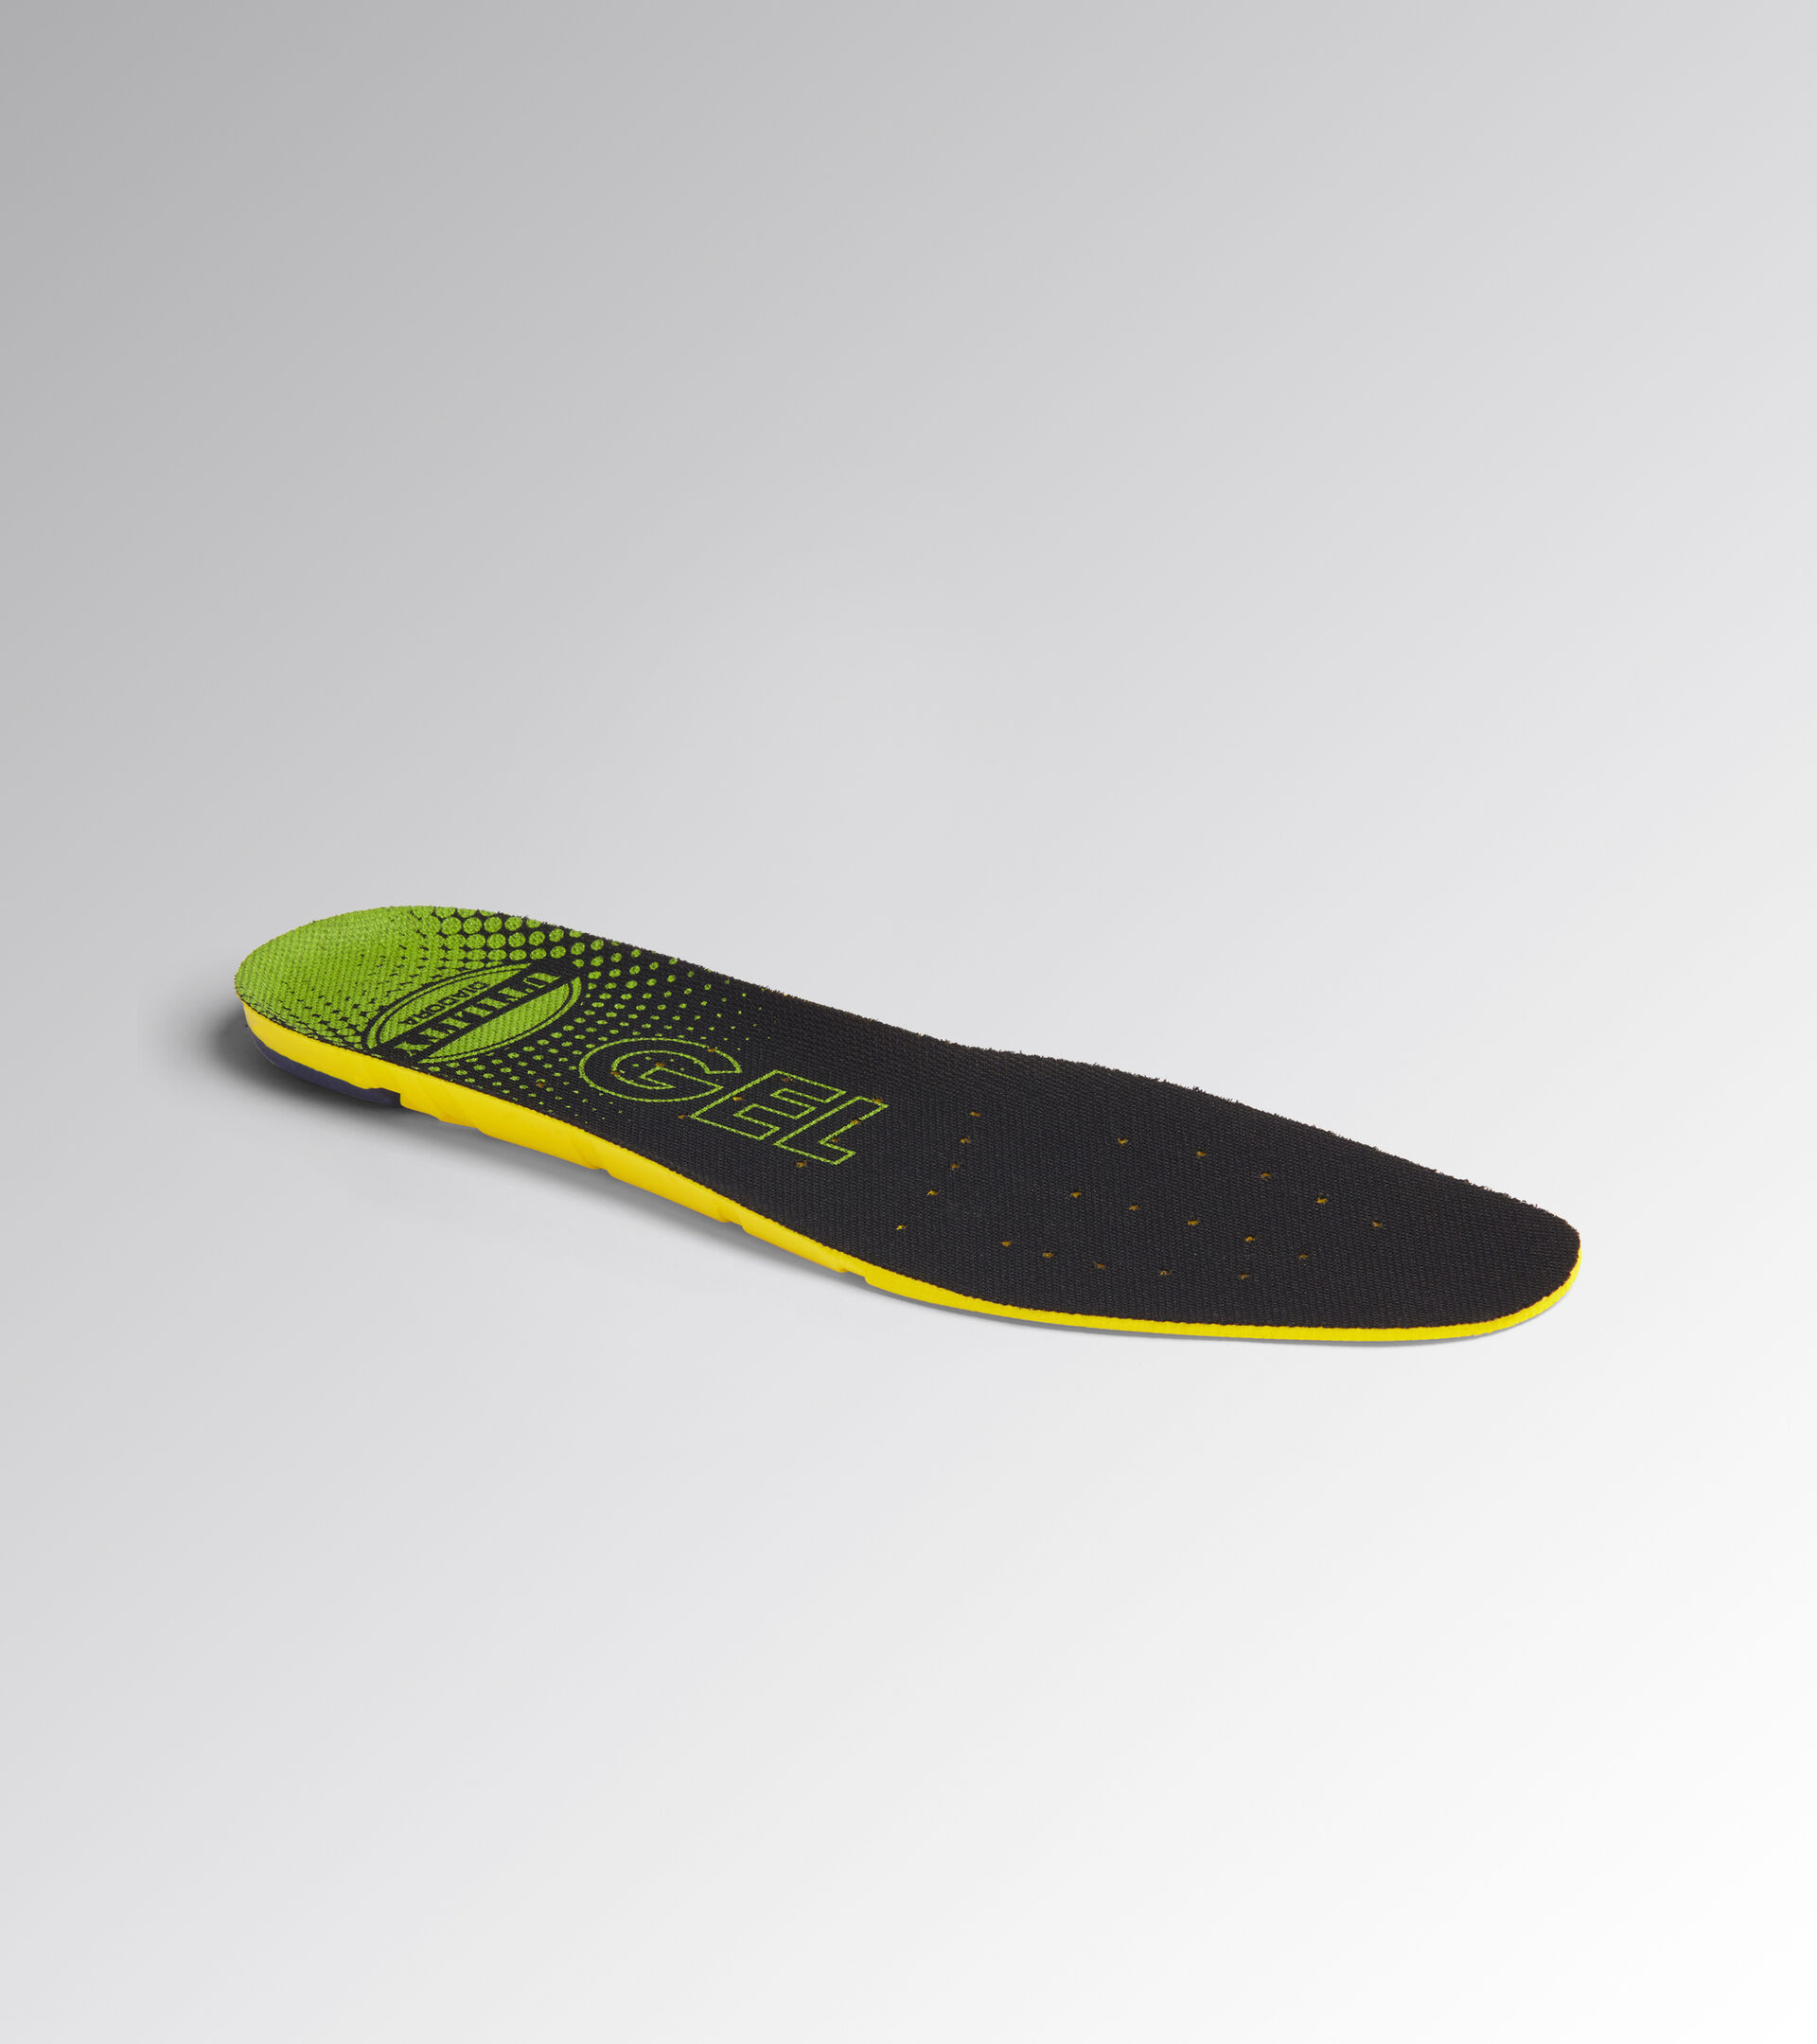 Accessories Utility UNISEX INSOLE GEL RELAX CLASSIC GREEN/YELLOW UTILITY Utility